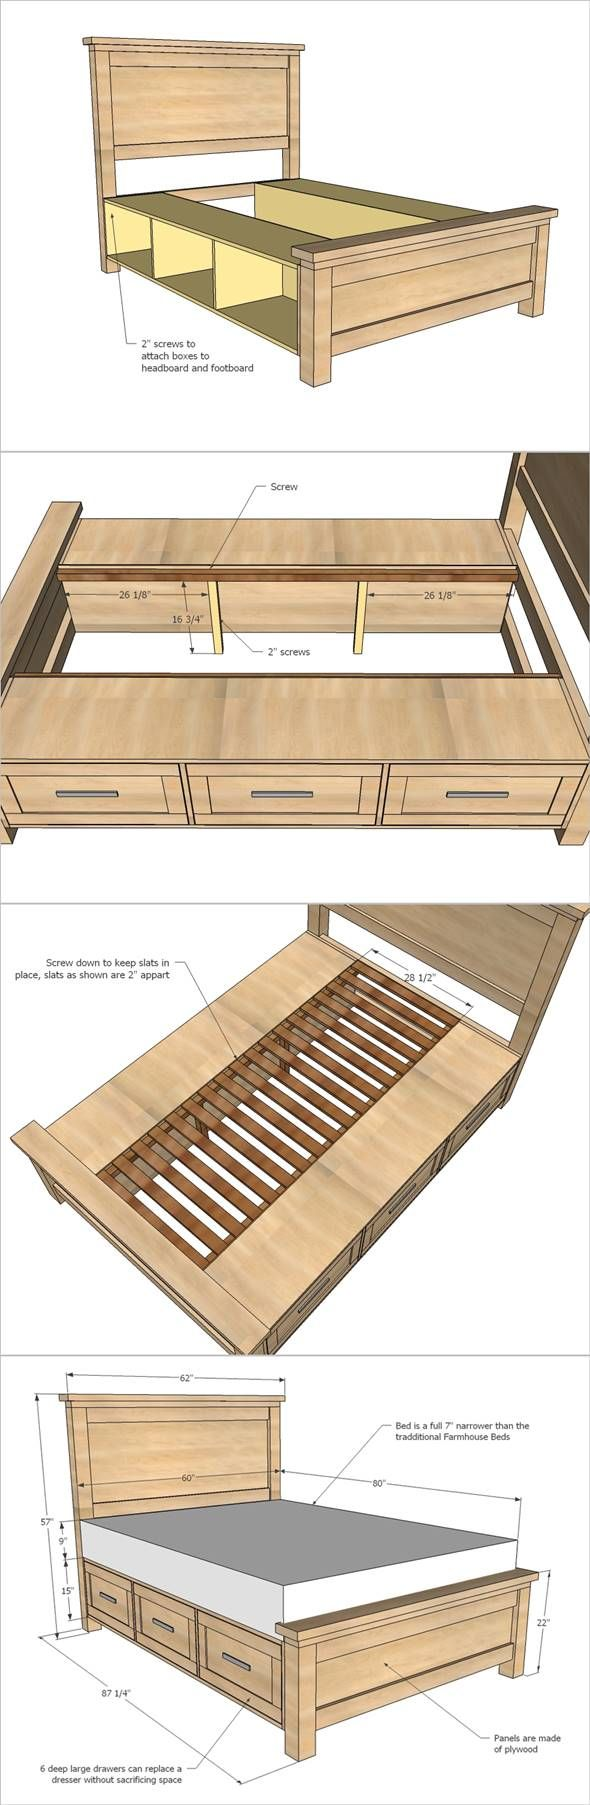 creative ideas how to build a farmhouse storage bed with drawers - Inexpensive Bed Frame